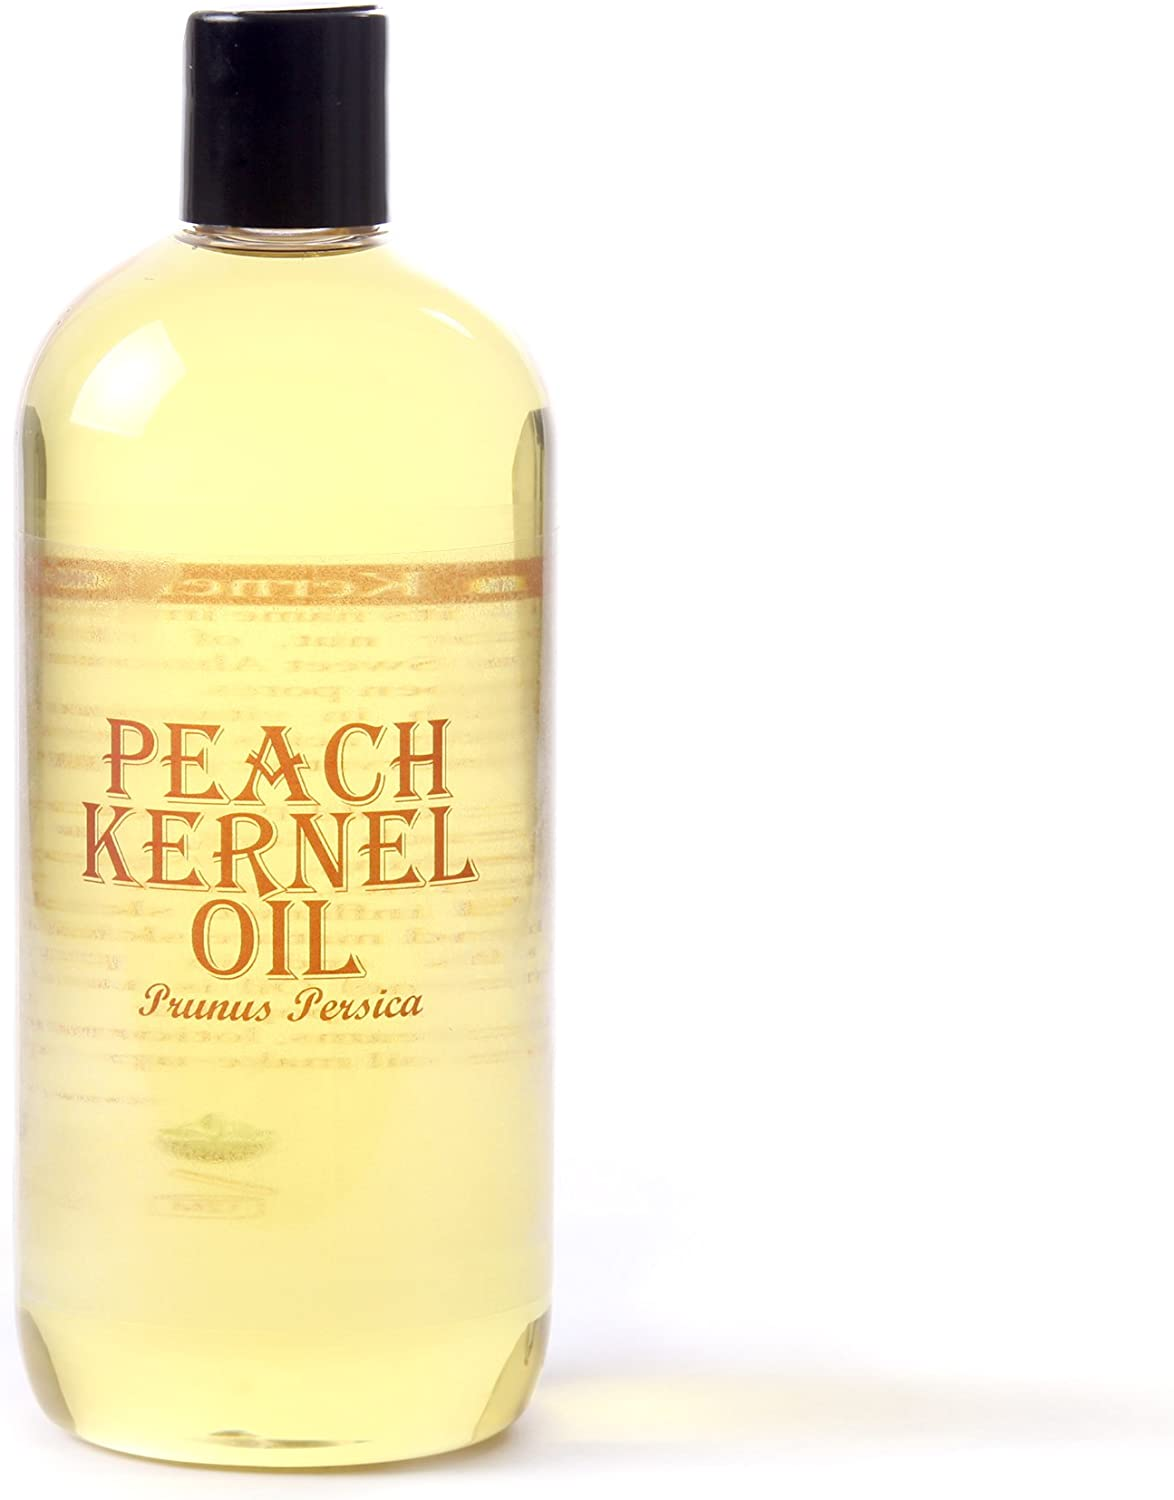 Mystic Moments Peach Kernel Carrier Oil 1 100% Industry No. 2021 new Litre Pure -